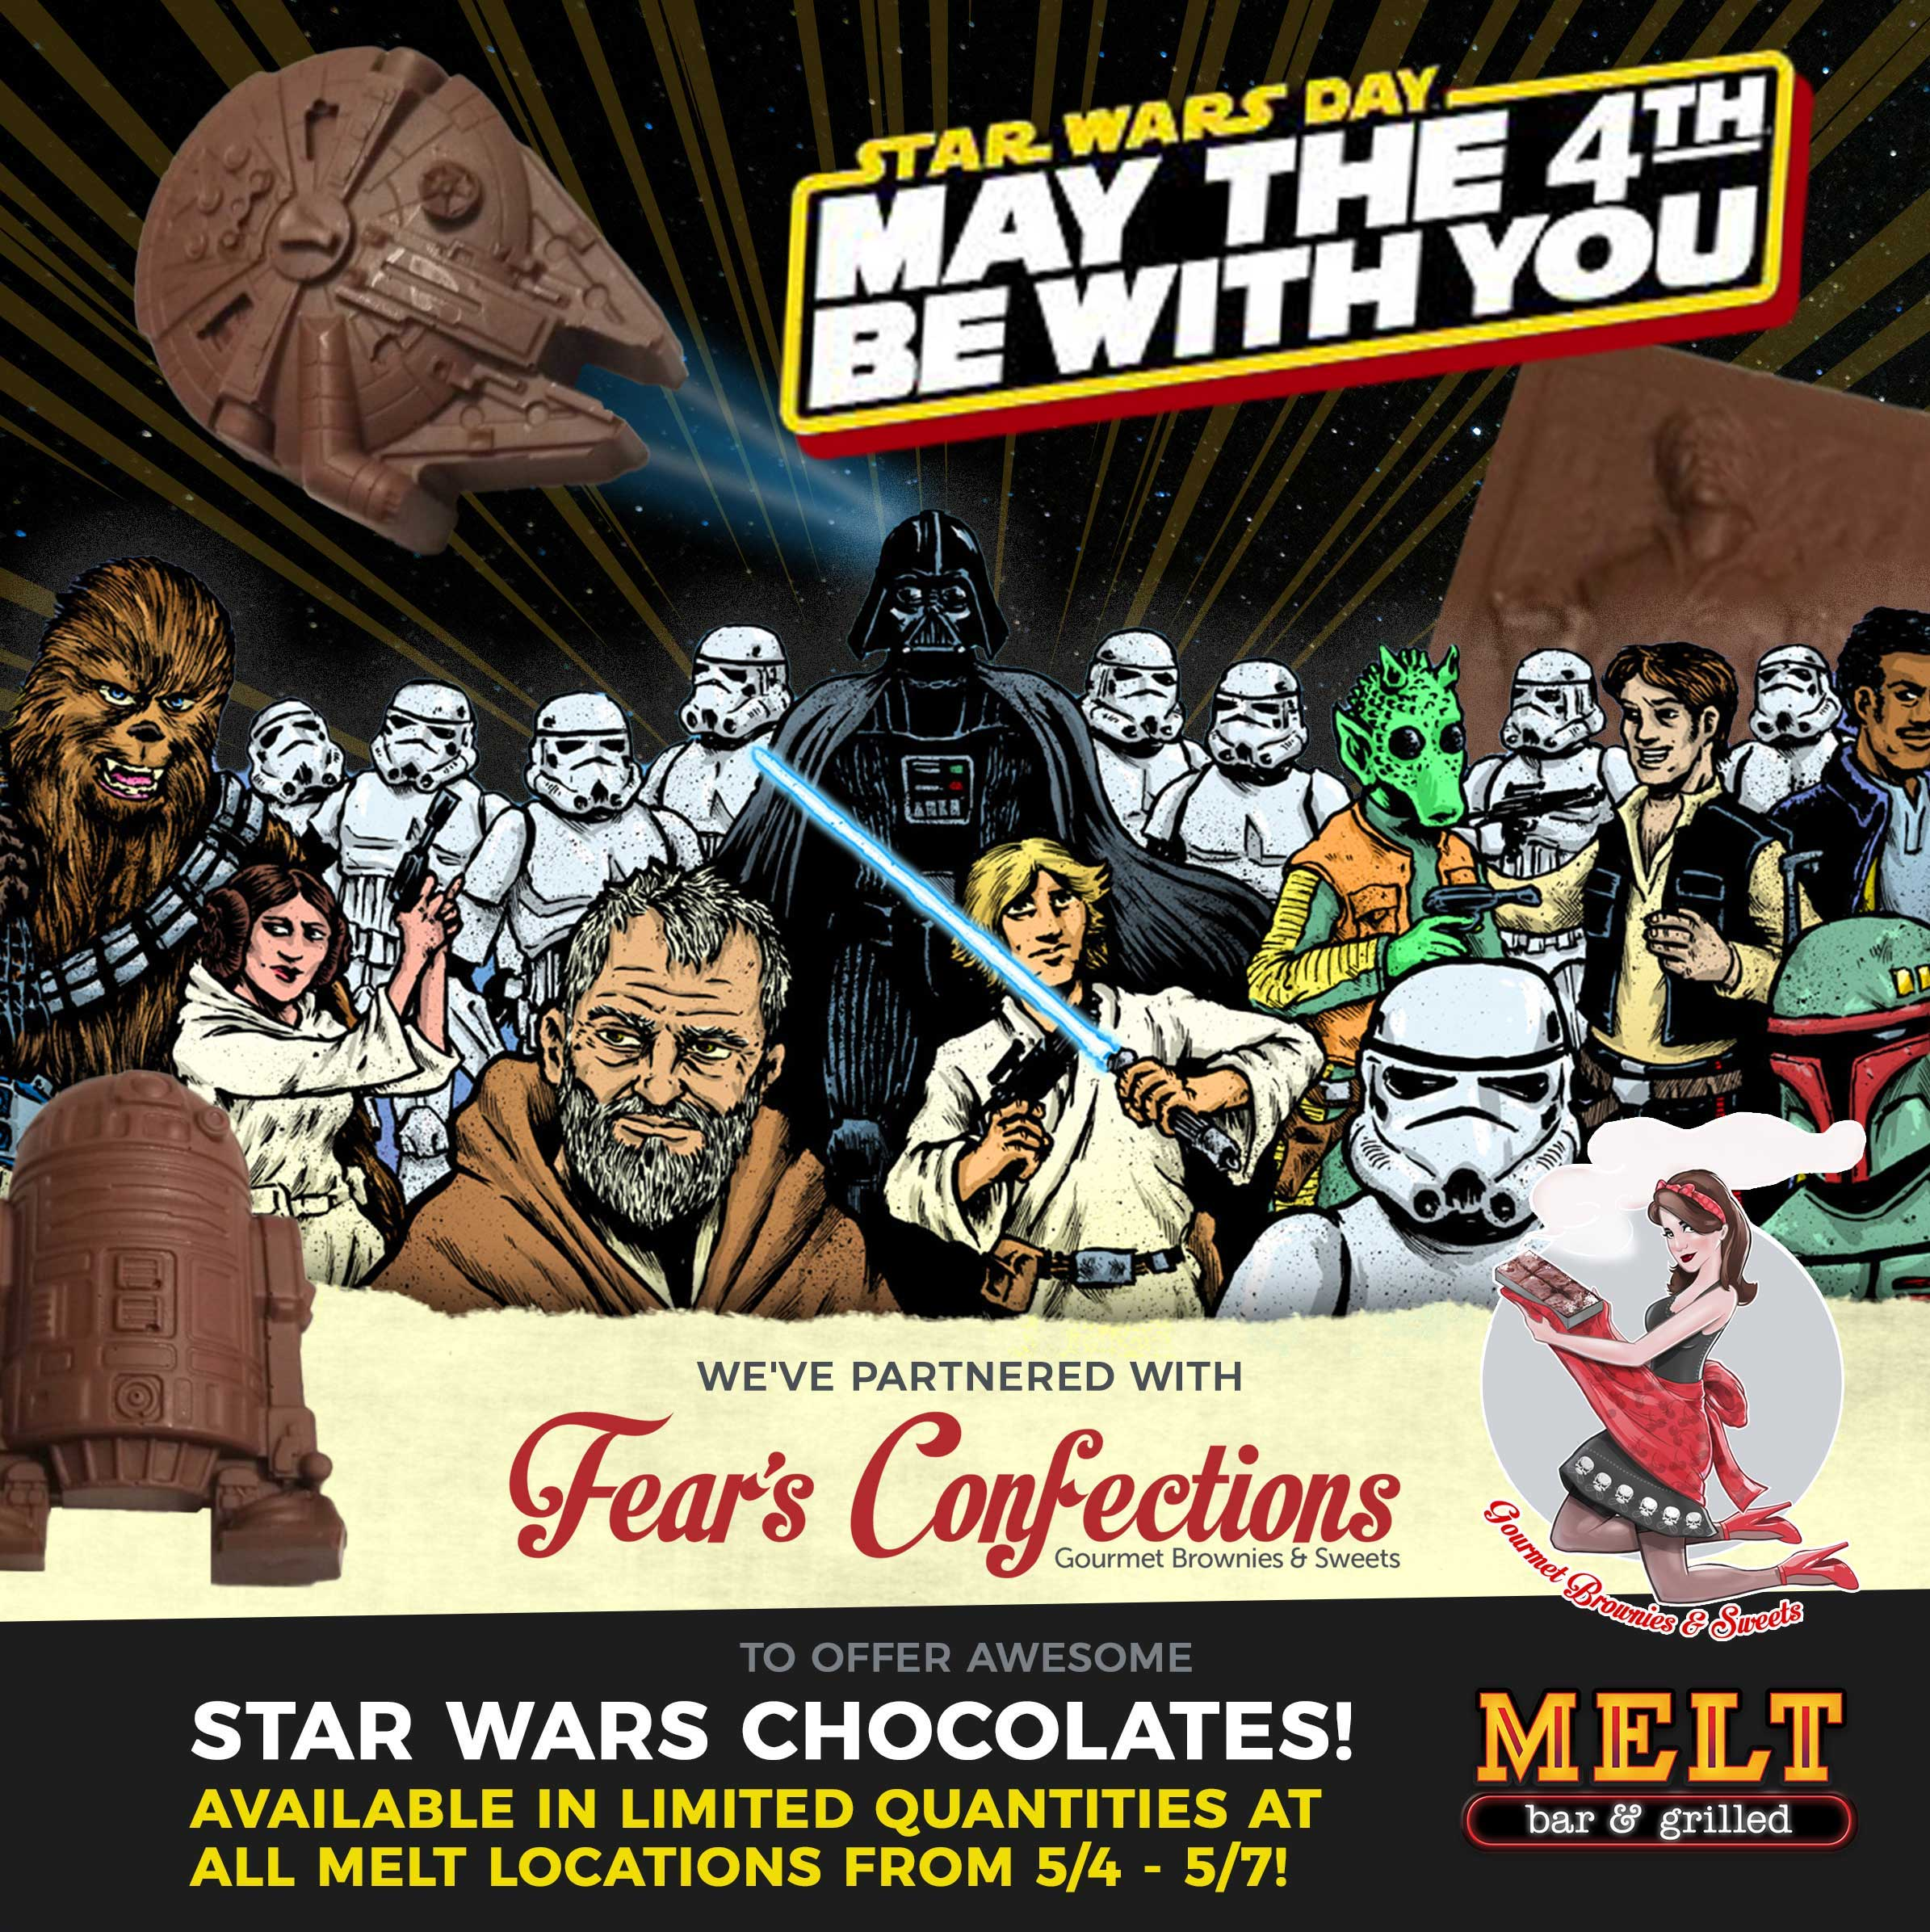 Special Star Wars Chocolates from Fear's Confections - 5/4 – 5/7!